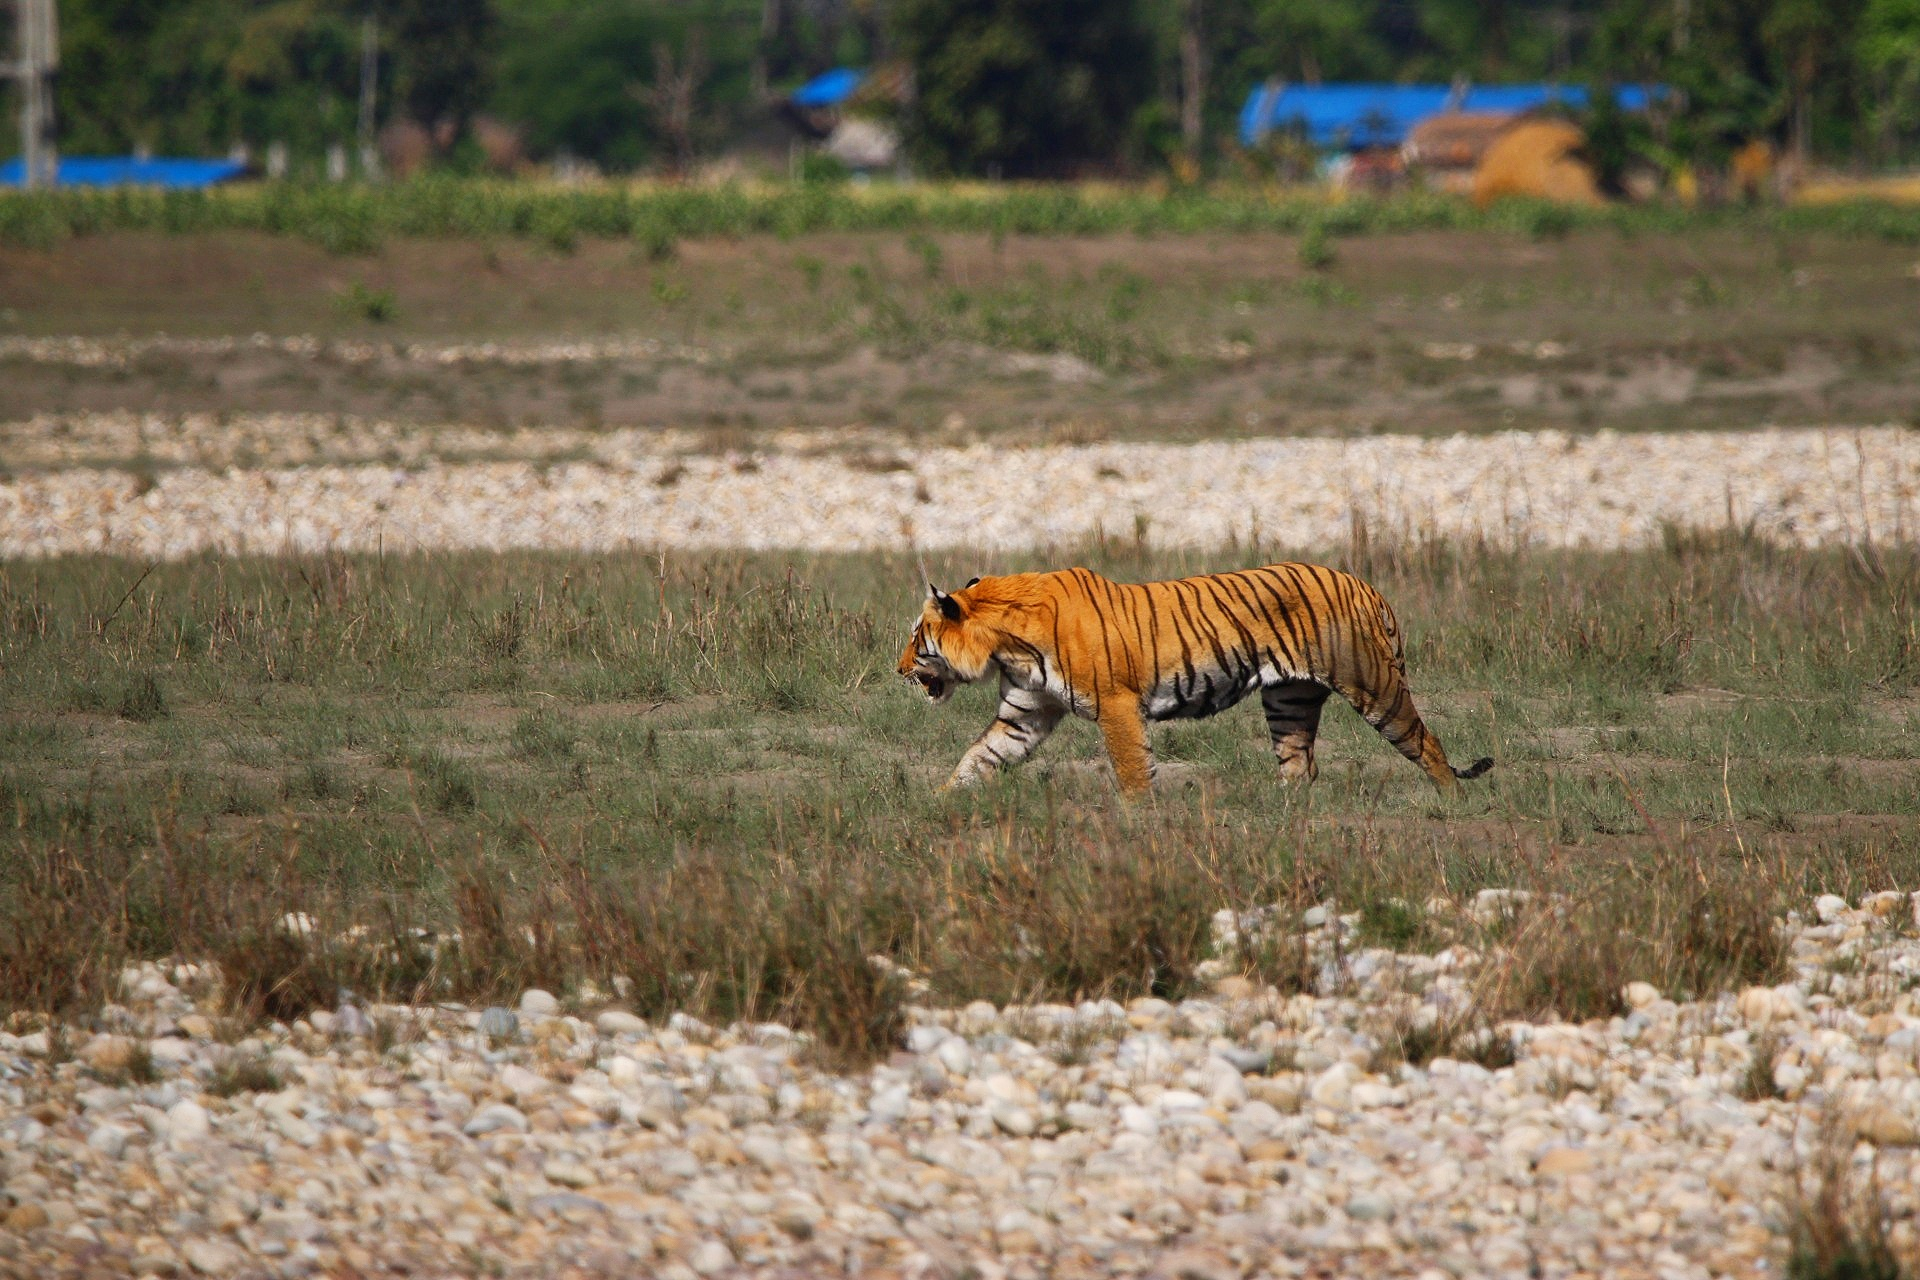 A Bengal tiger walks past a village on the outskirts of Bardia National Park, Nepal, in March 2020. Water shortages in the park have been proposed as a factor driving increased conflict between tigers and the people who live around the park (Image: Bhawany Kandel)